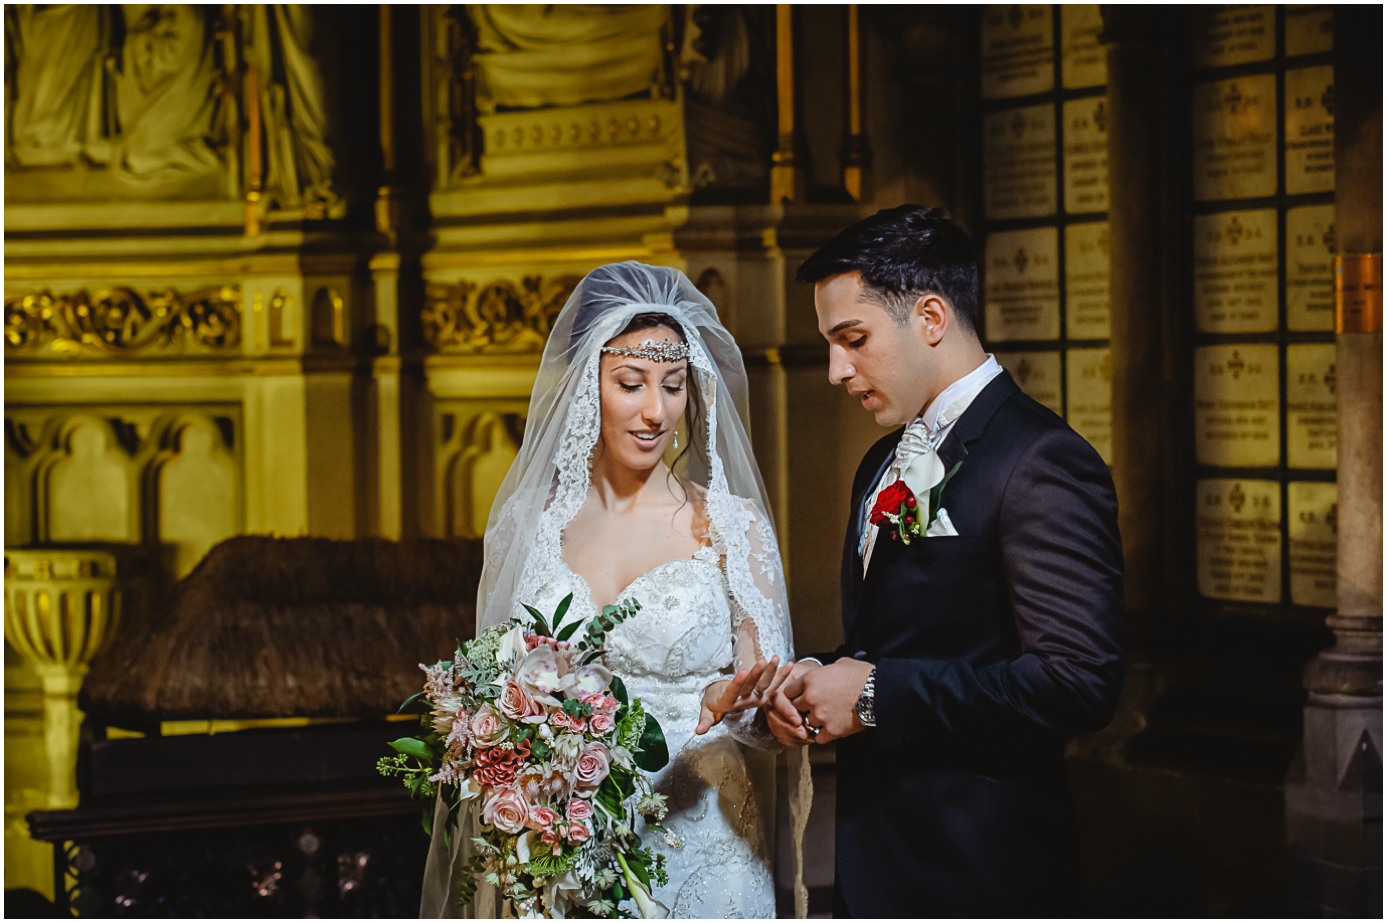 iranian wedding photographer 91 - Drapers Hall London Wedding Photographer